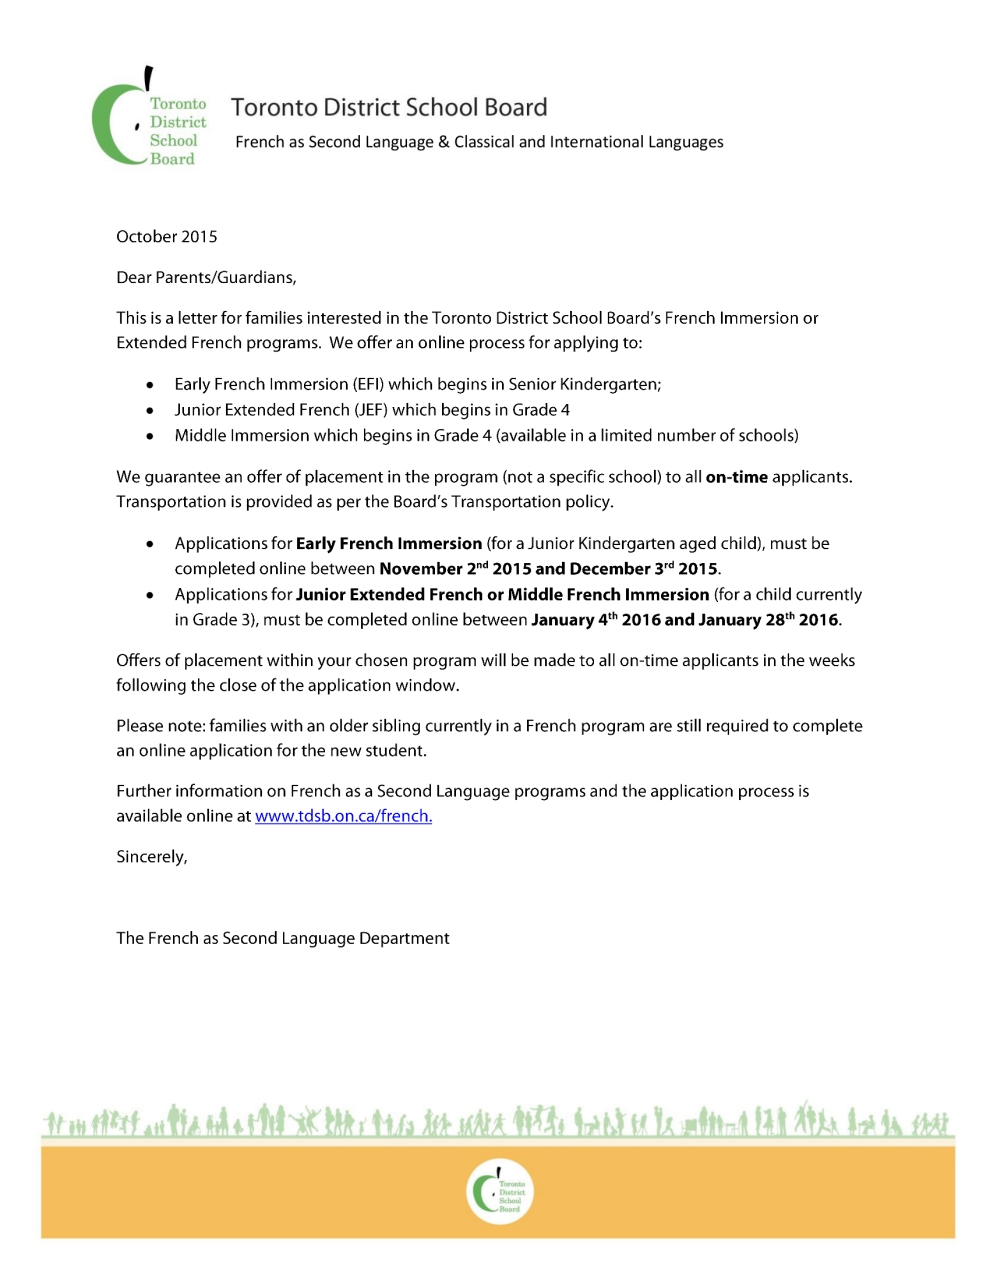 French Immersion Letter to parents Timelines 2015